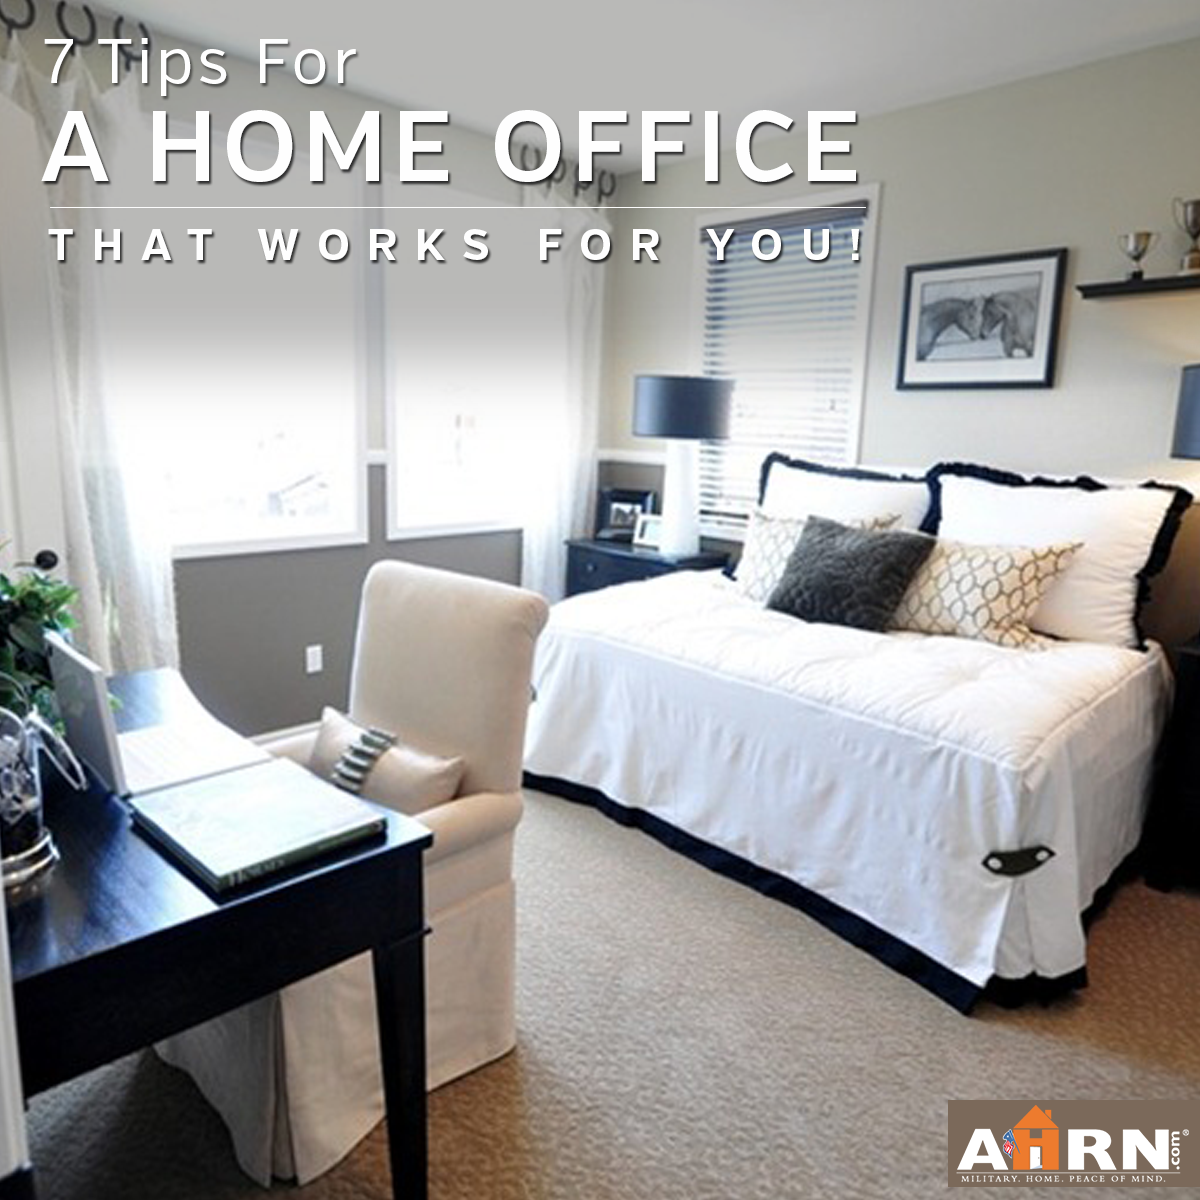 7 Tips For A Home Office That Works For You with AHRN.com | AHRN.com